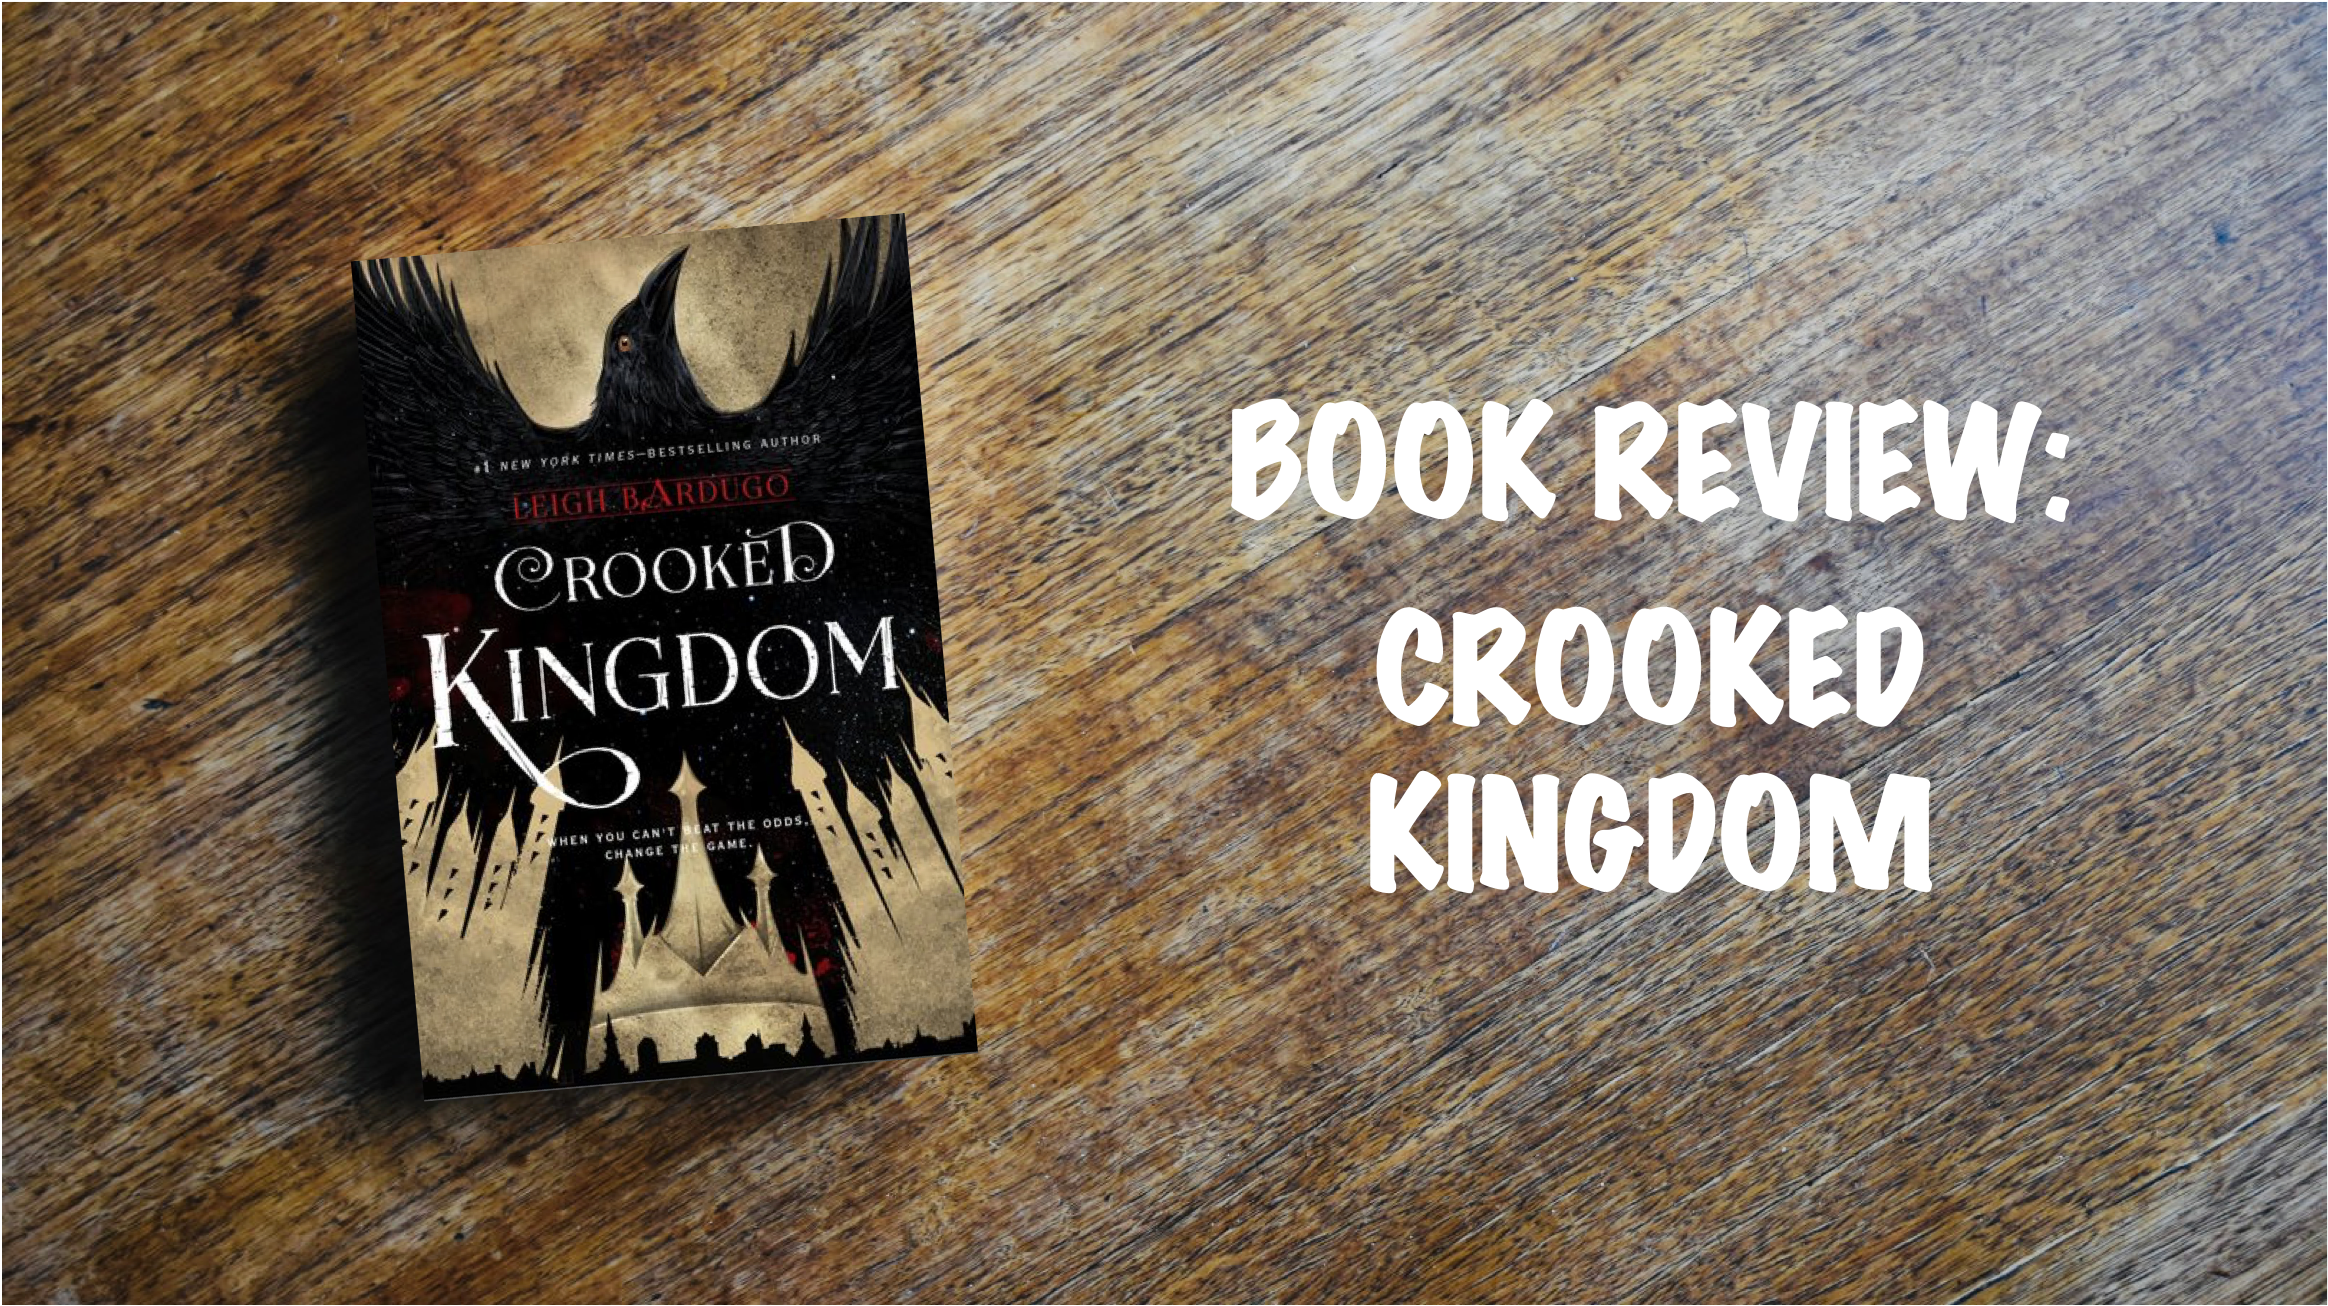 Book review banner: Crooked Kingdom